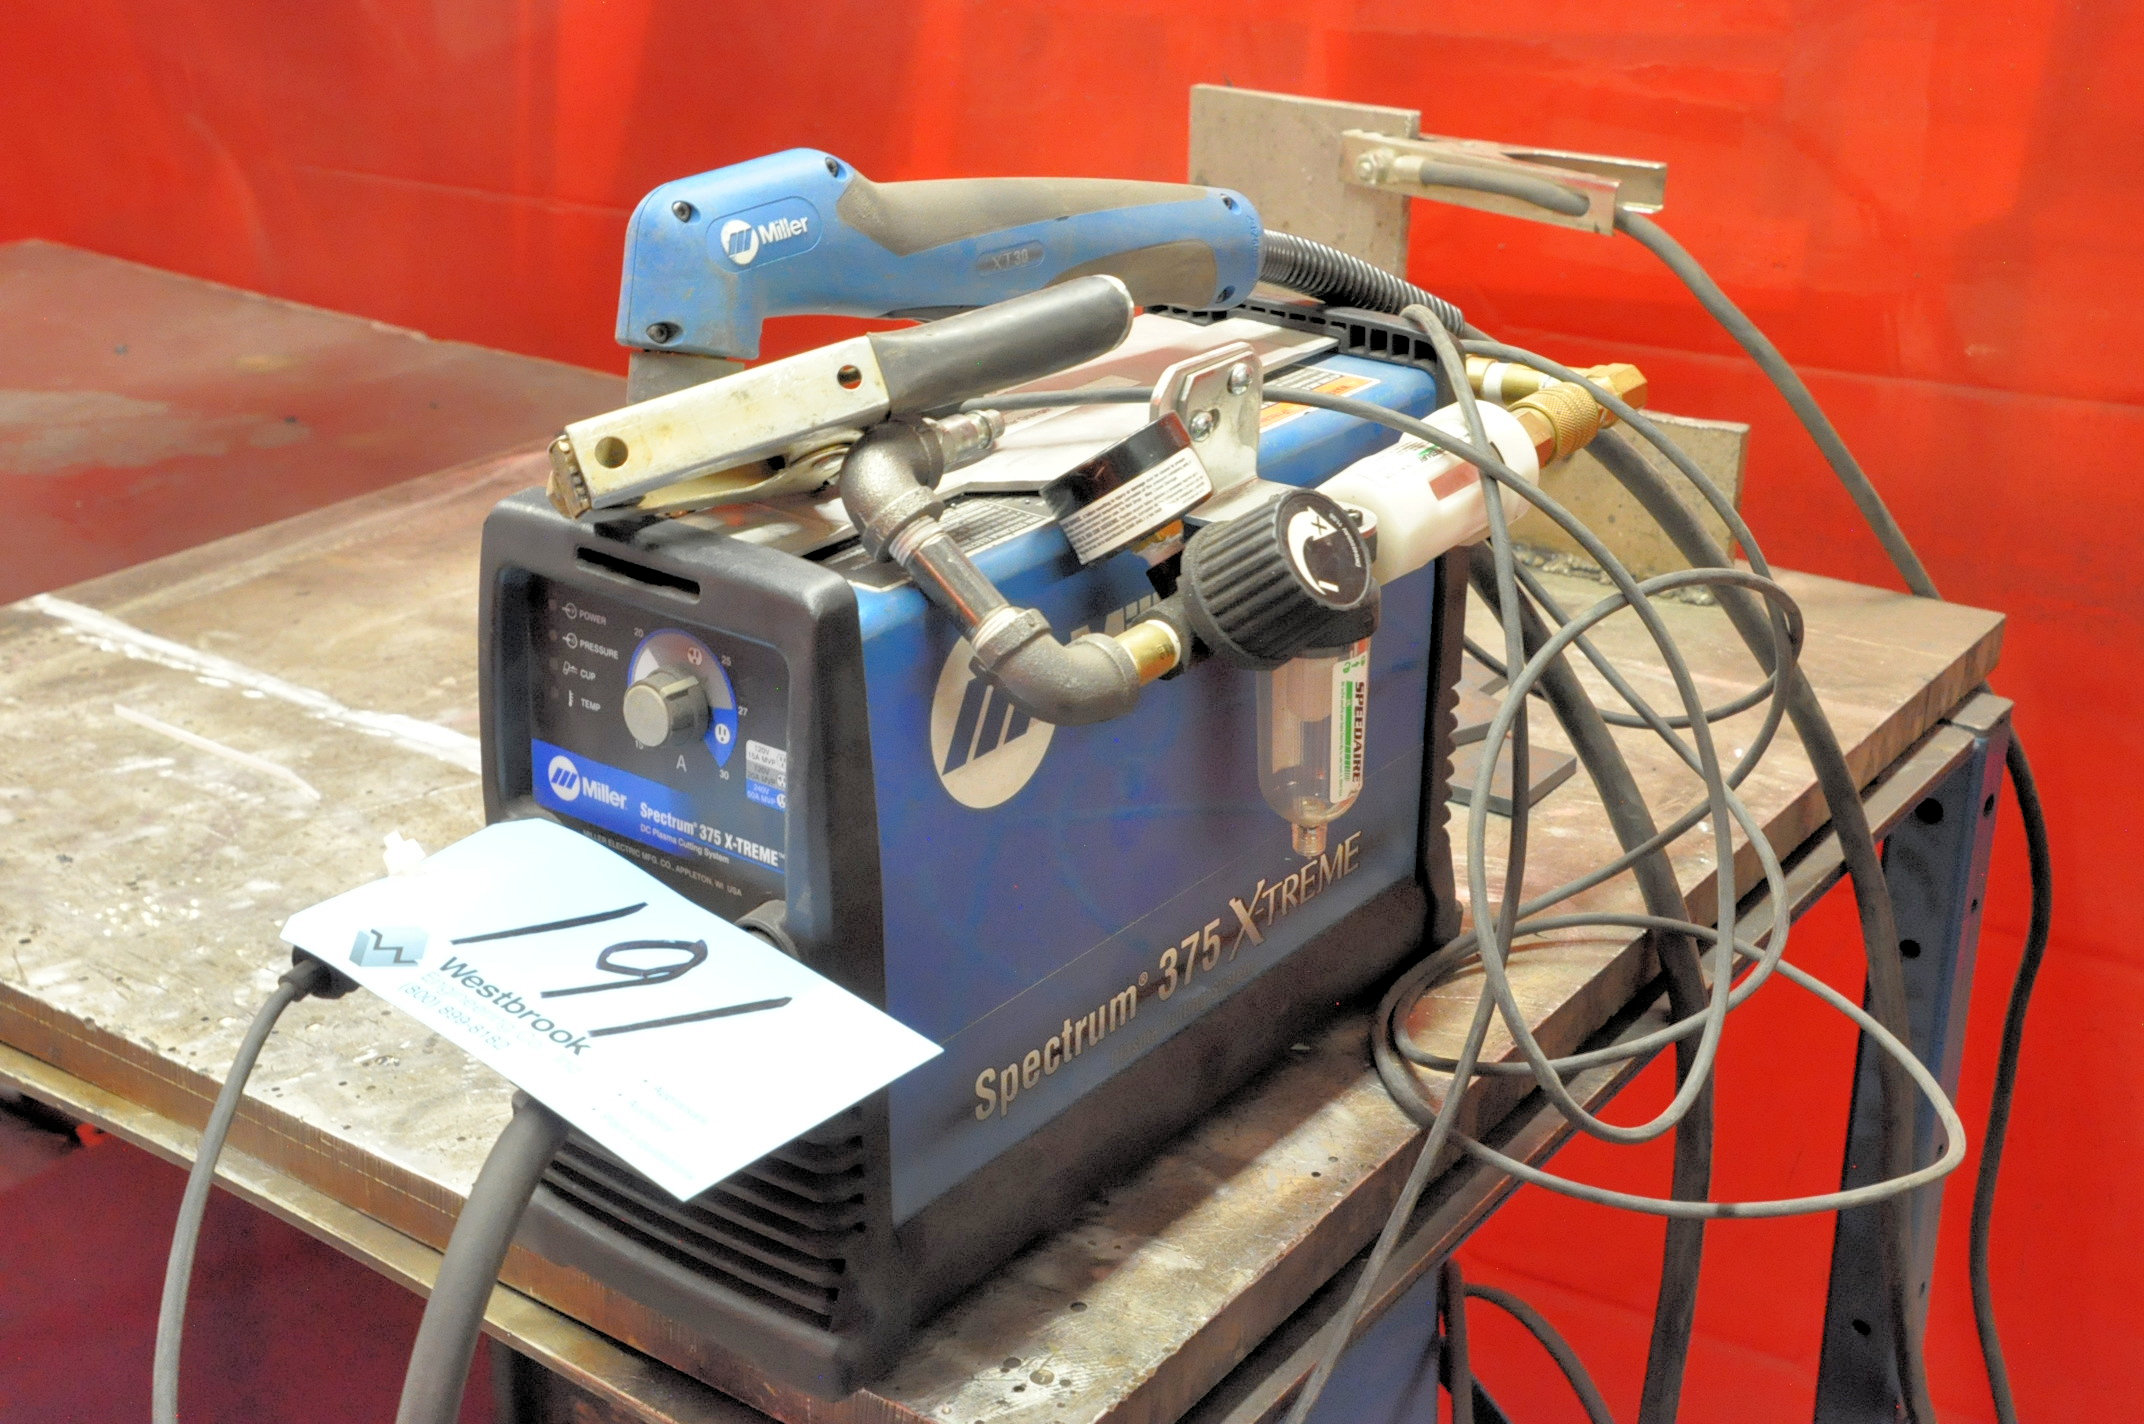 Miller Spectrum 375 X-Treme, Hand Held DC Plasma Cutting System with 110 Volt Adapter